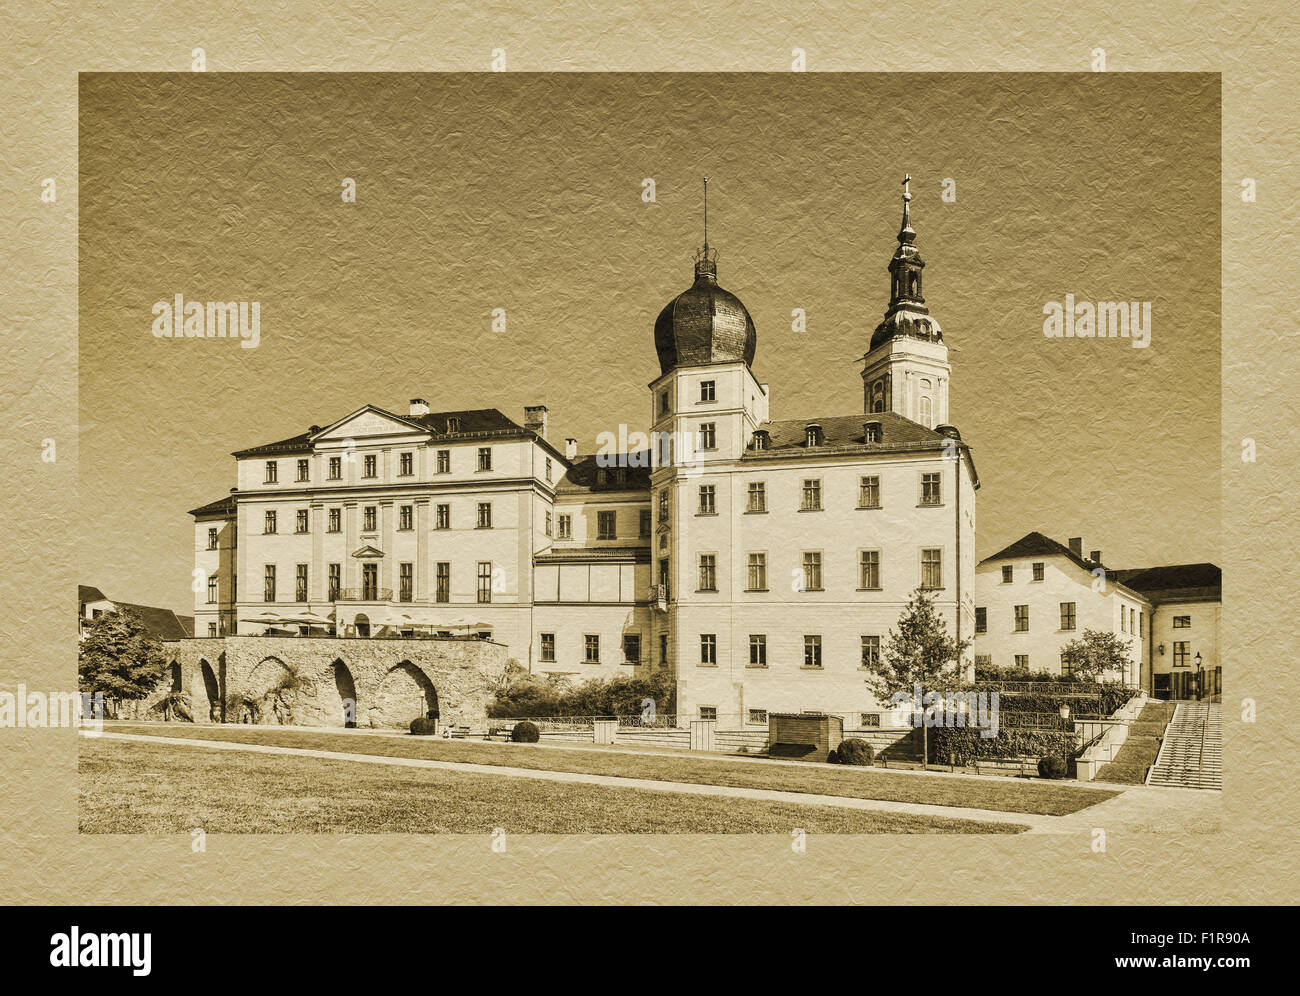 The Lower Castle is situated next to the St. Marys Church, Greiz, Thuringia, Germany, Europe - Stock Image